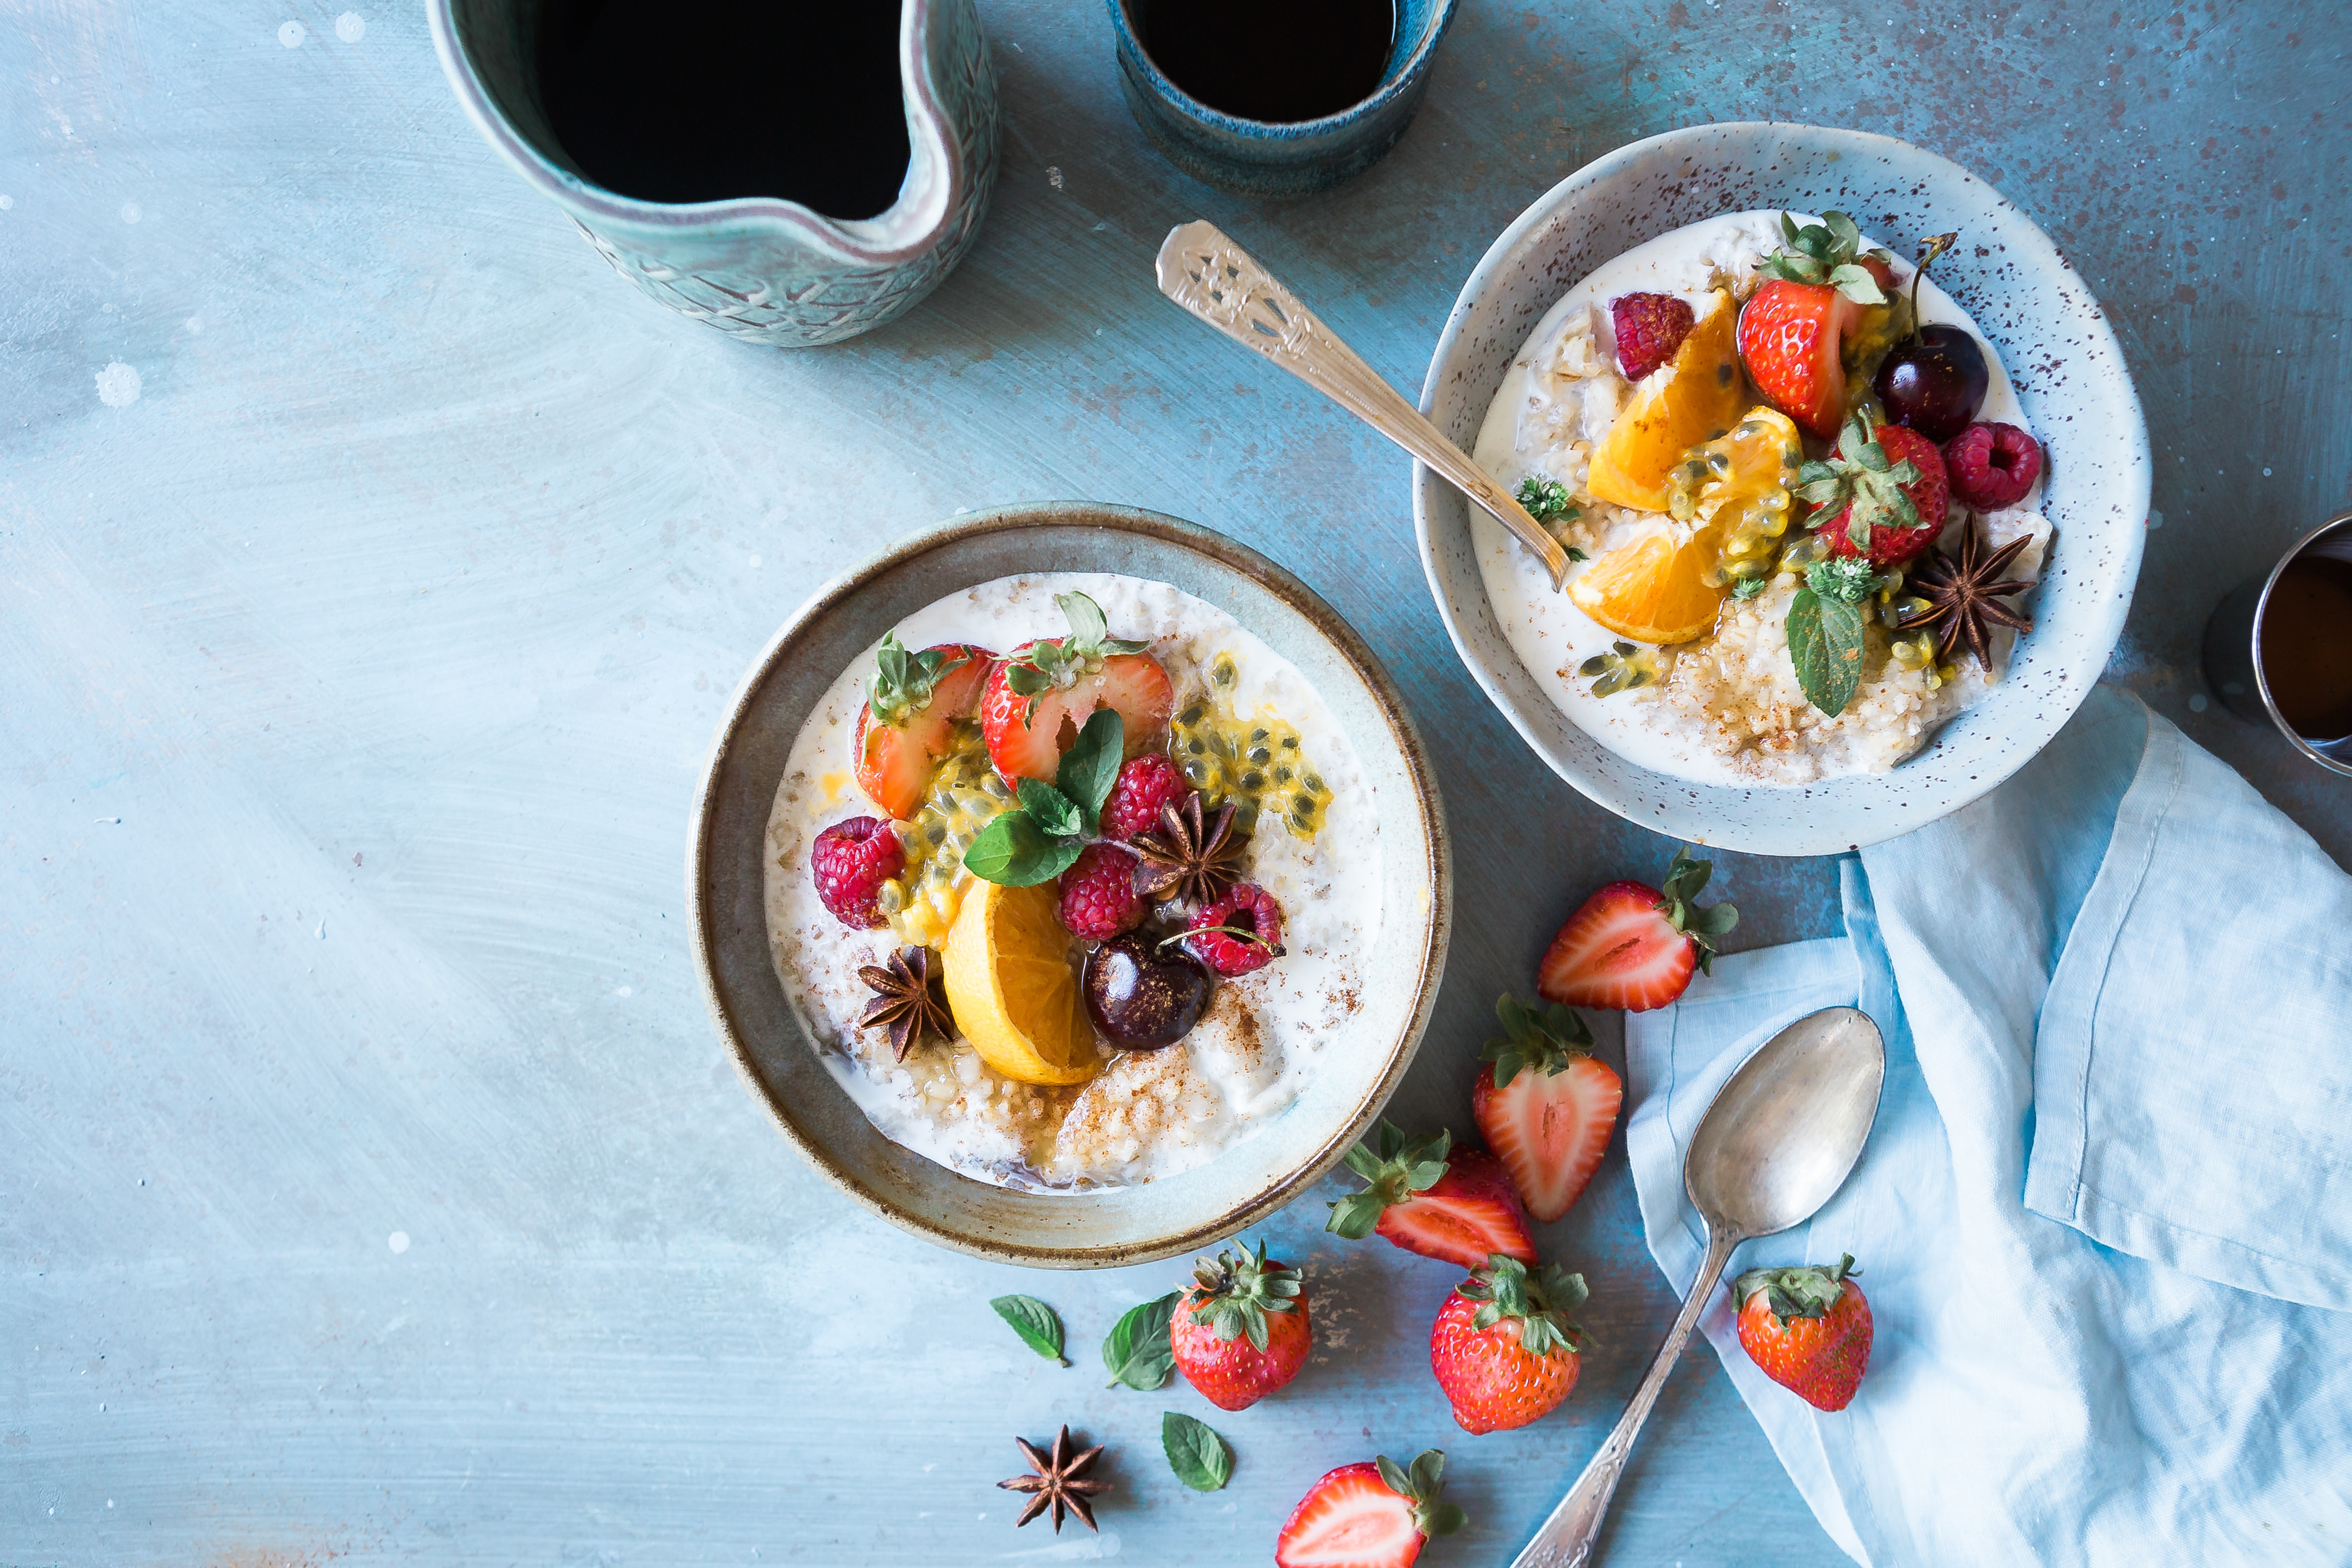 Which Is Better For Weight Loss – Eating Breakfast Or Skipping It?